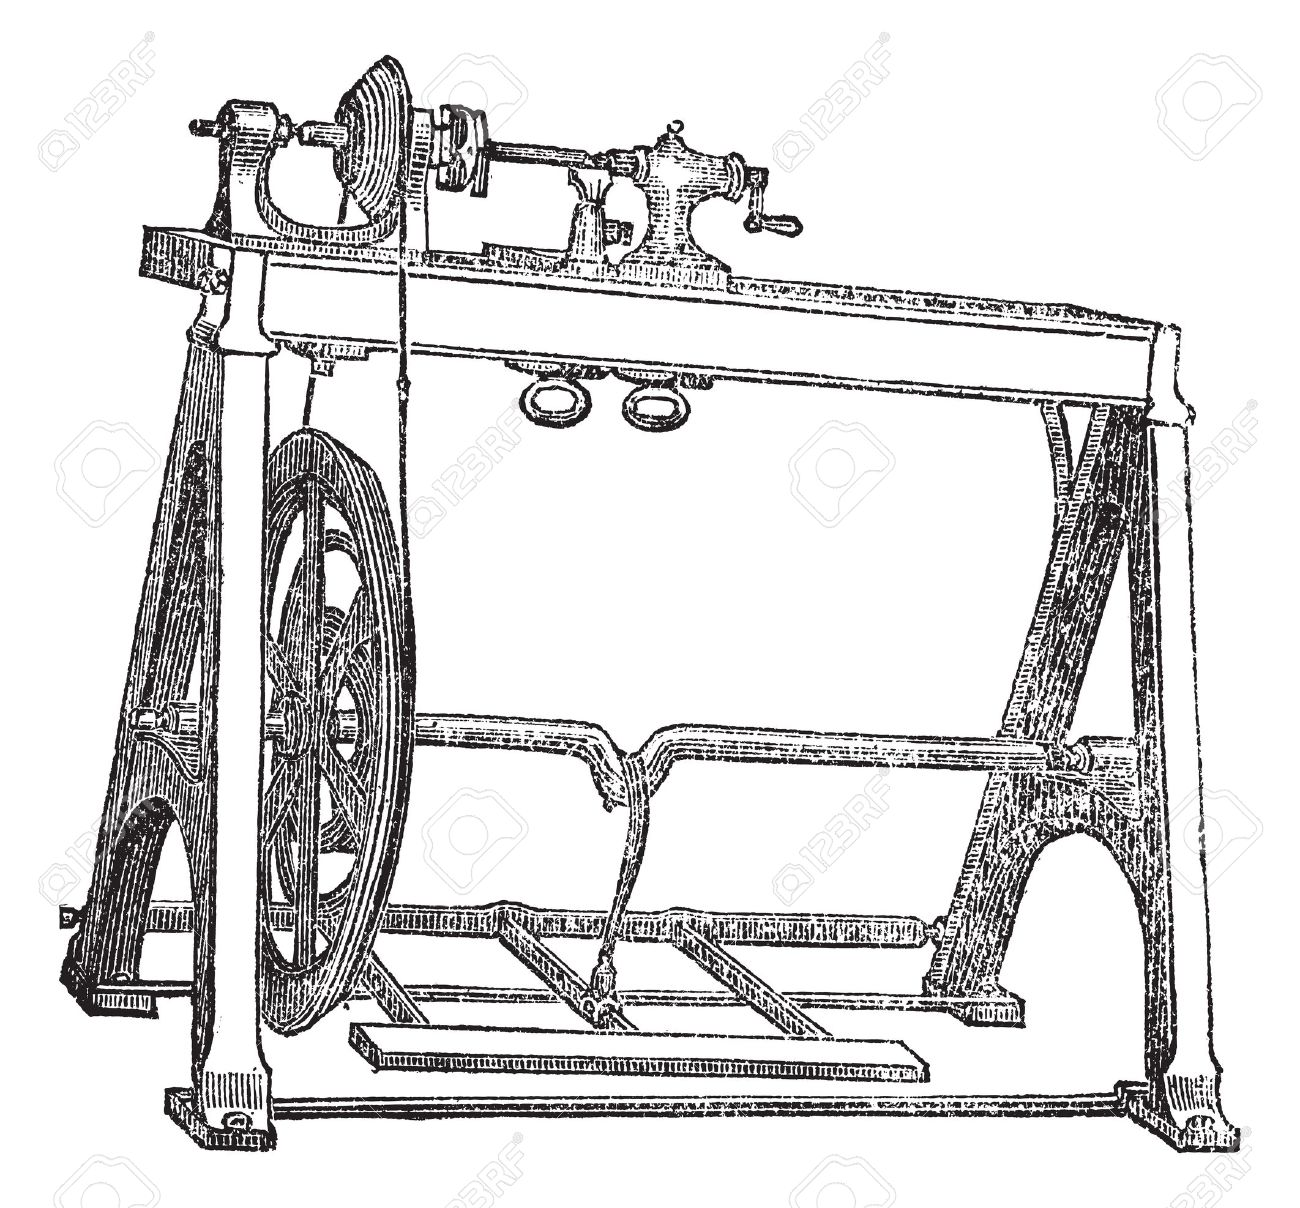 Spindle Lathe Woodturning Machine, Vintage Engraved Illustration.